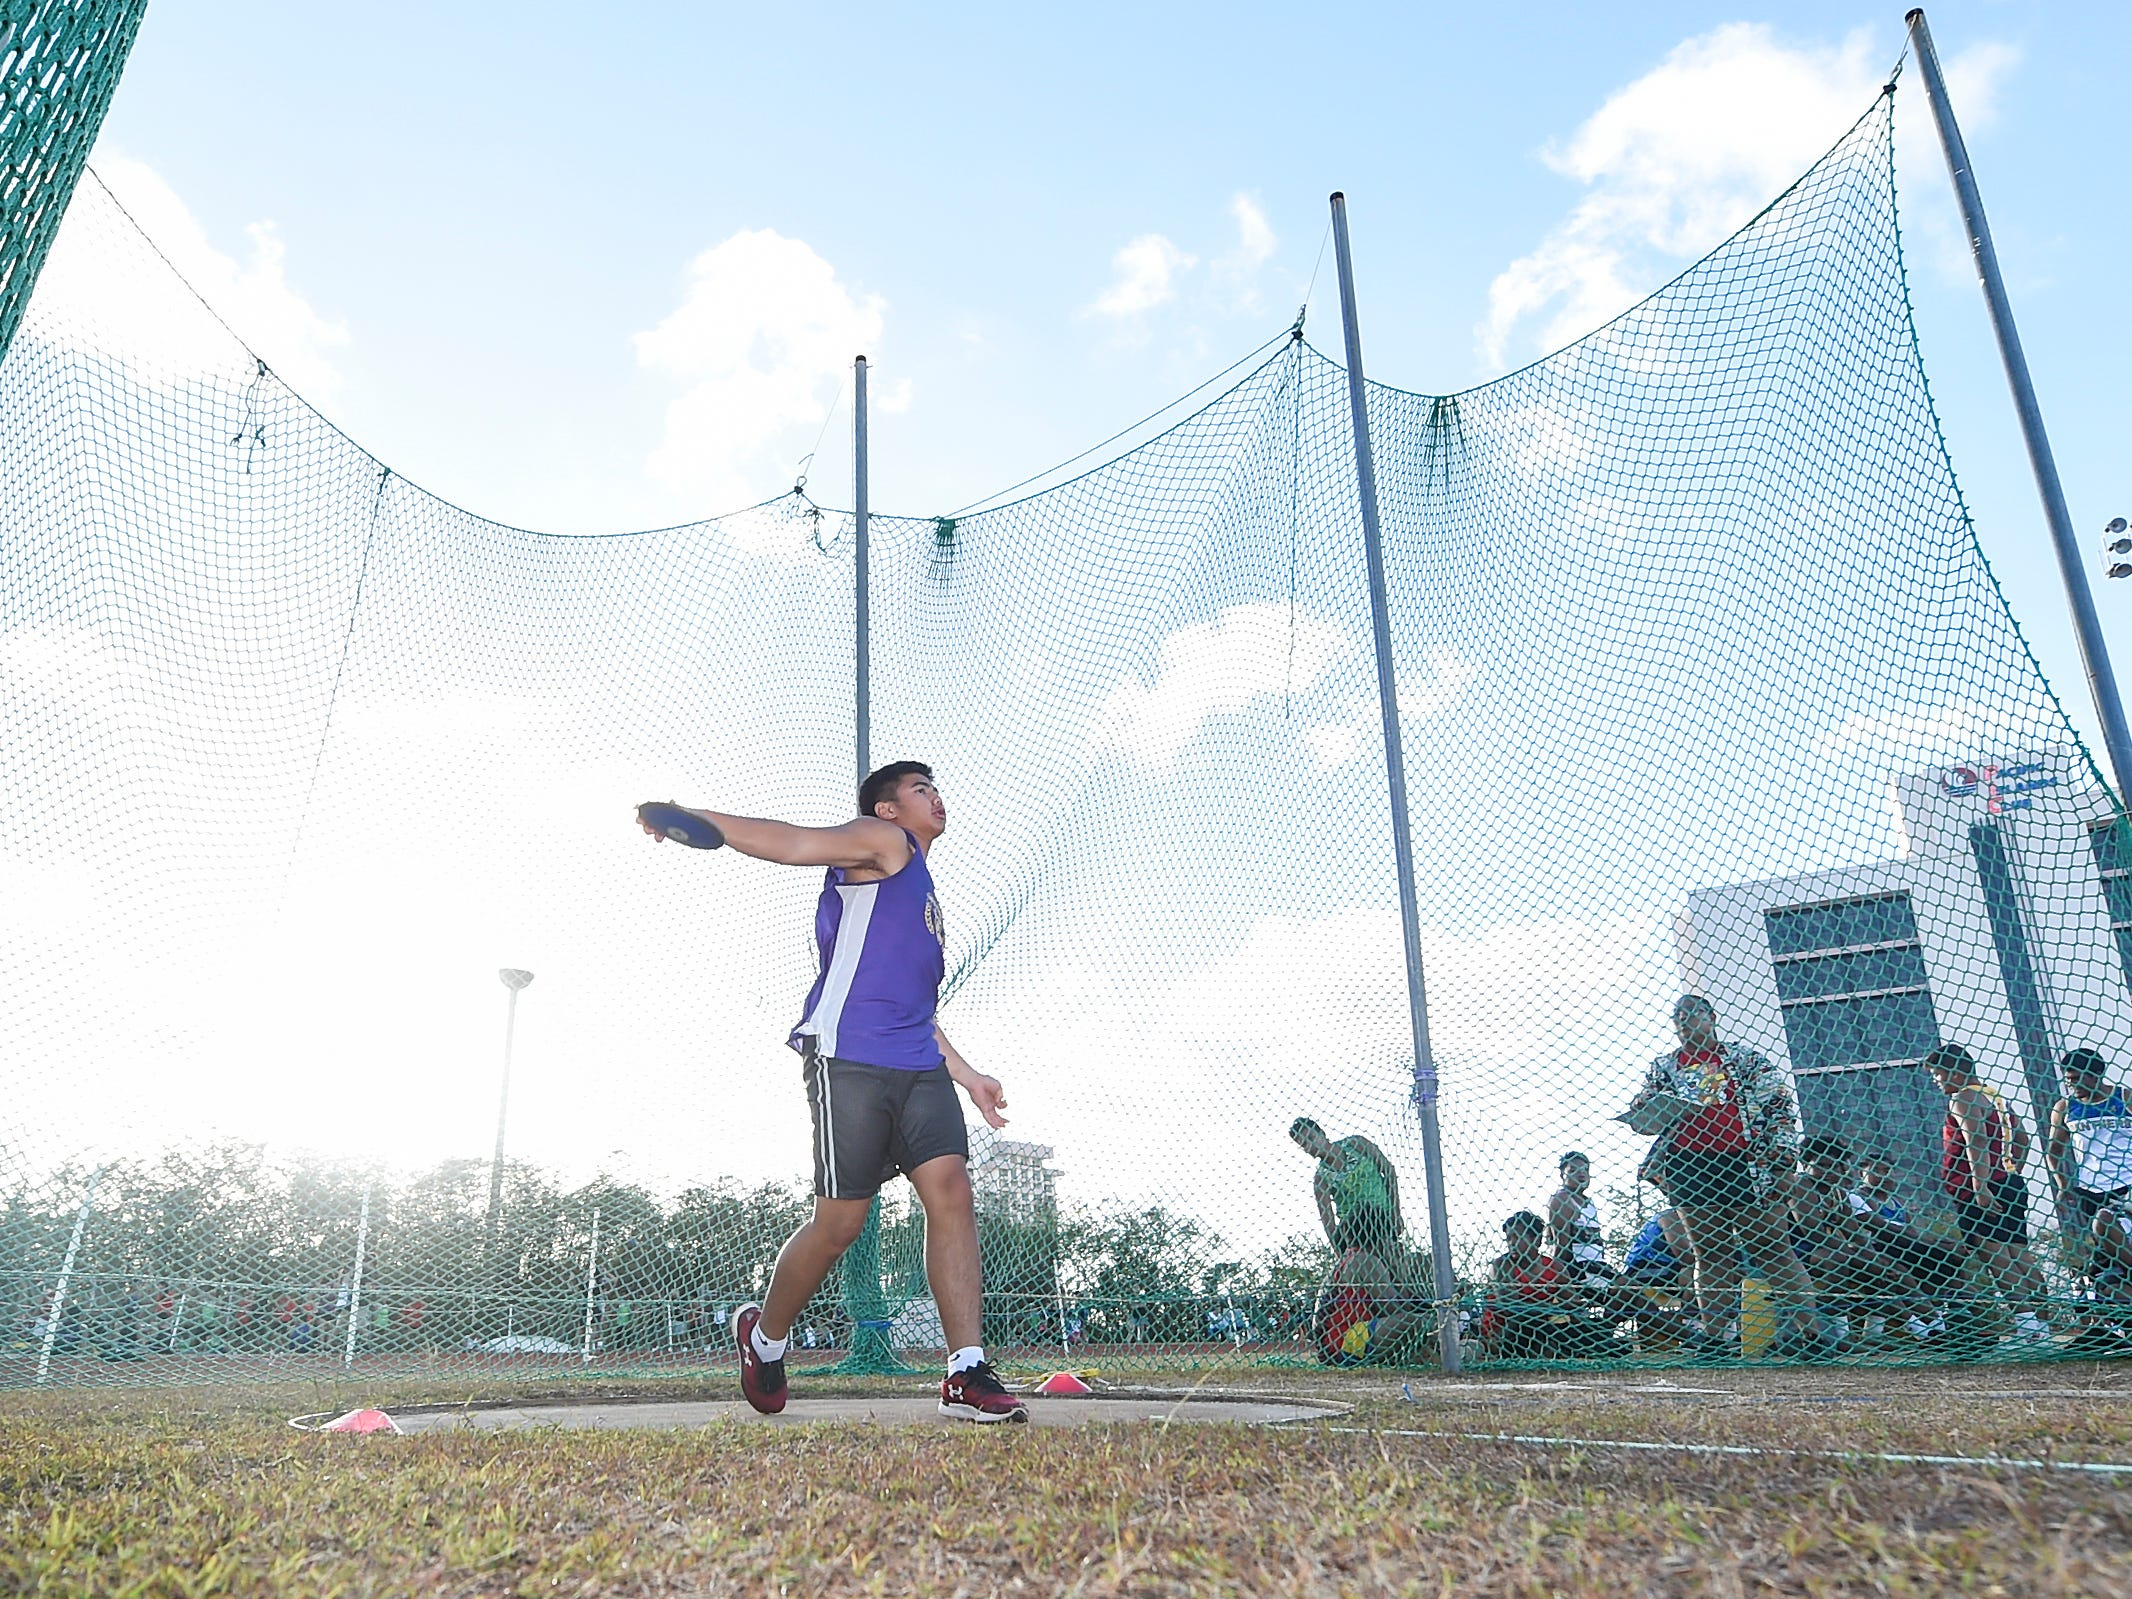 George Washington's Mykai Blas, 15, competes in the Discus 1.6kg Varsity during a IIAAG Track and Field meet at John F. Kennedy Ramsey Field in Tamuning on May 10, 2019.